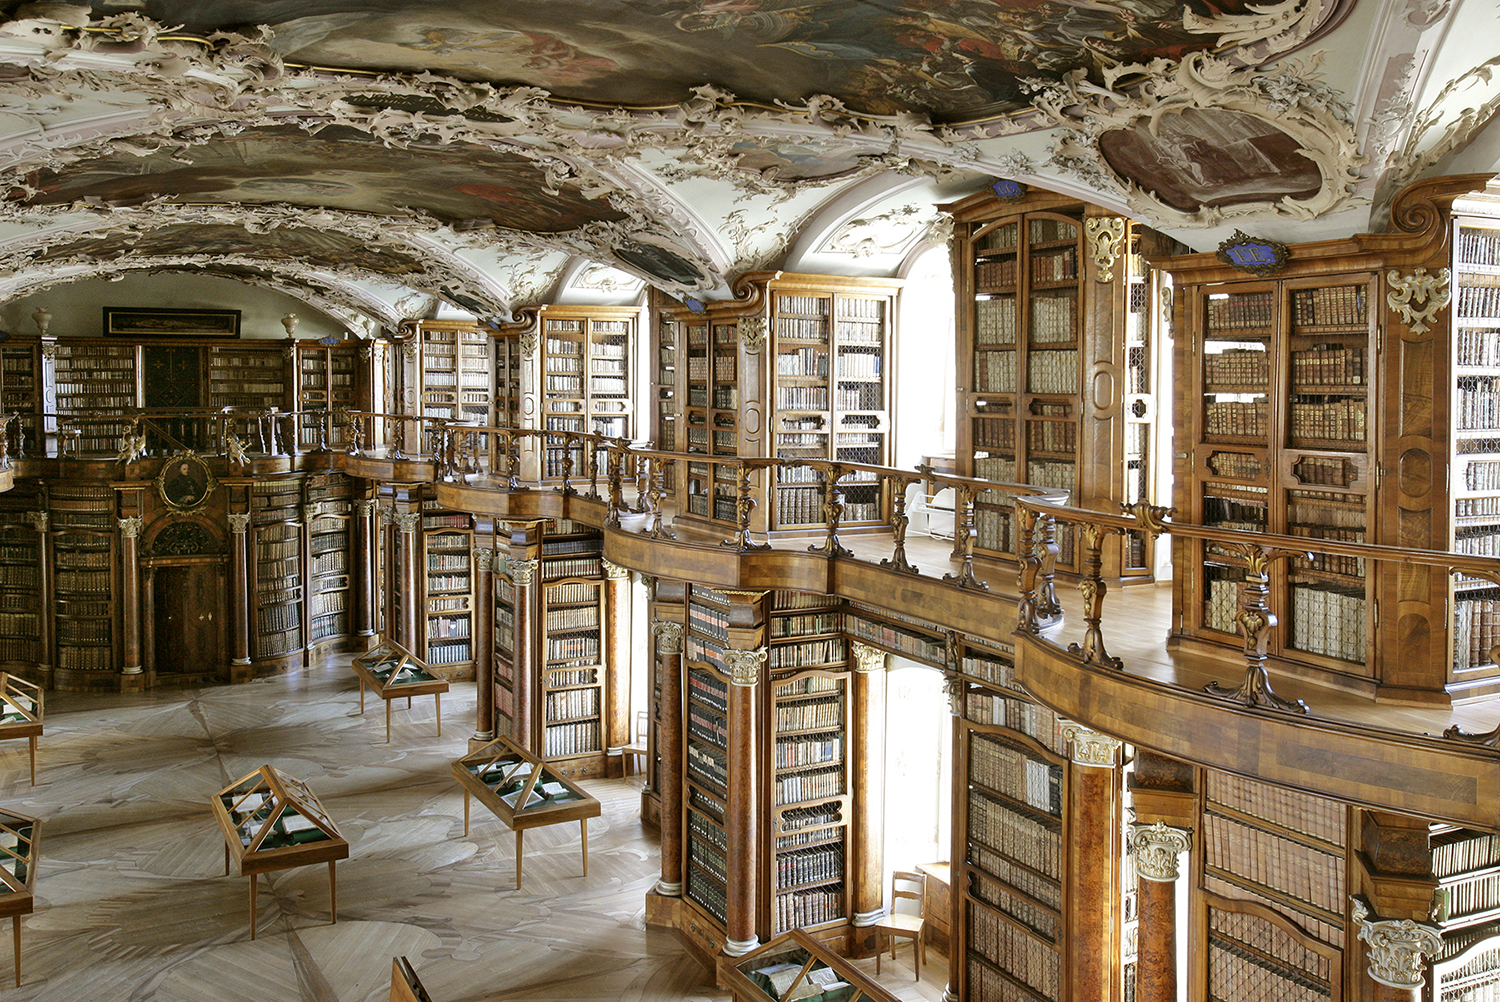 The Baroque Room at the heart of the Abbey Library of St. Gall, St. Gallen, Switzerland